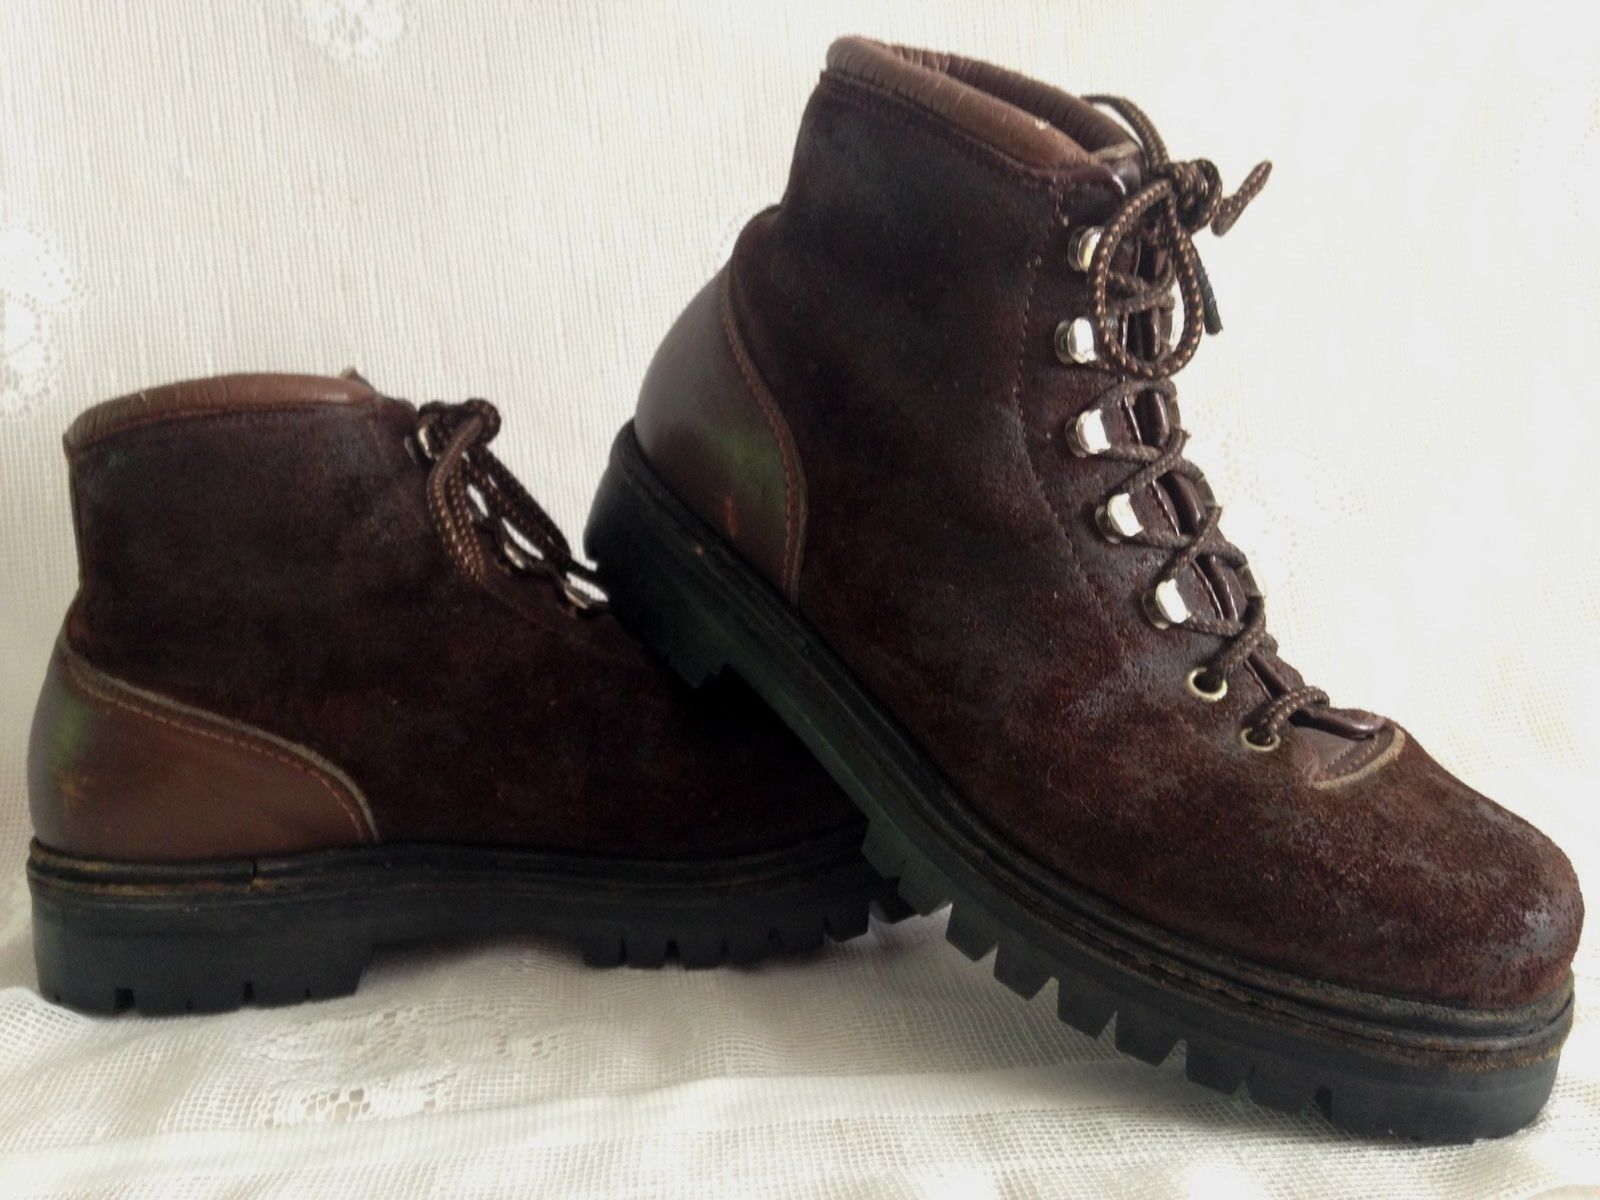 Vintage Calzaturificio The Alps By Fabiano Brown Suede Hiking Boots Women's 8.5N